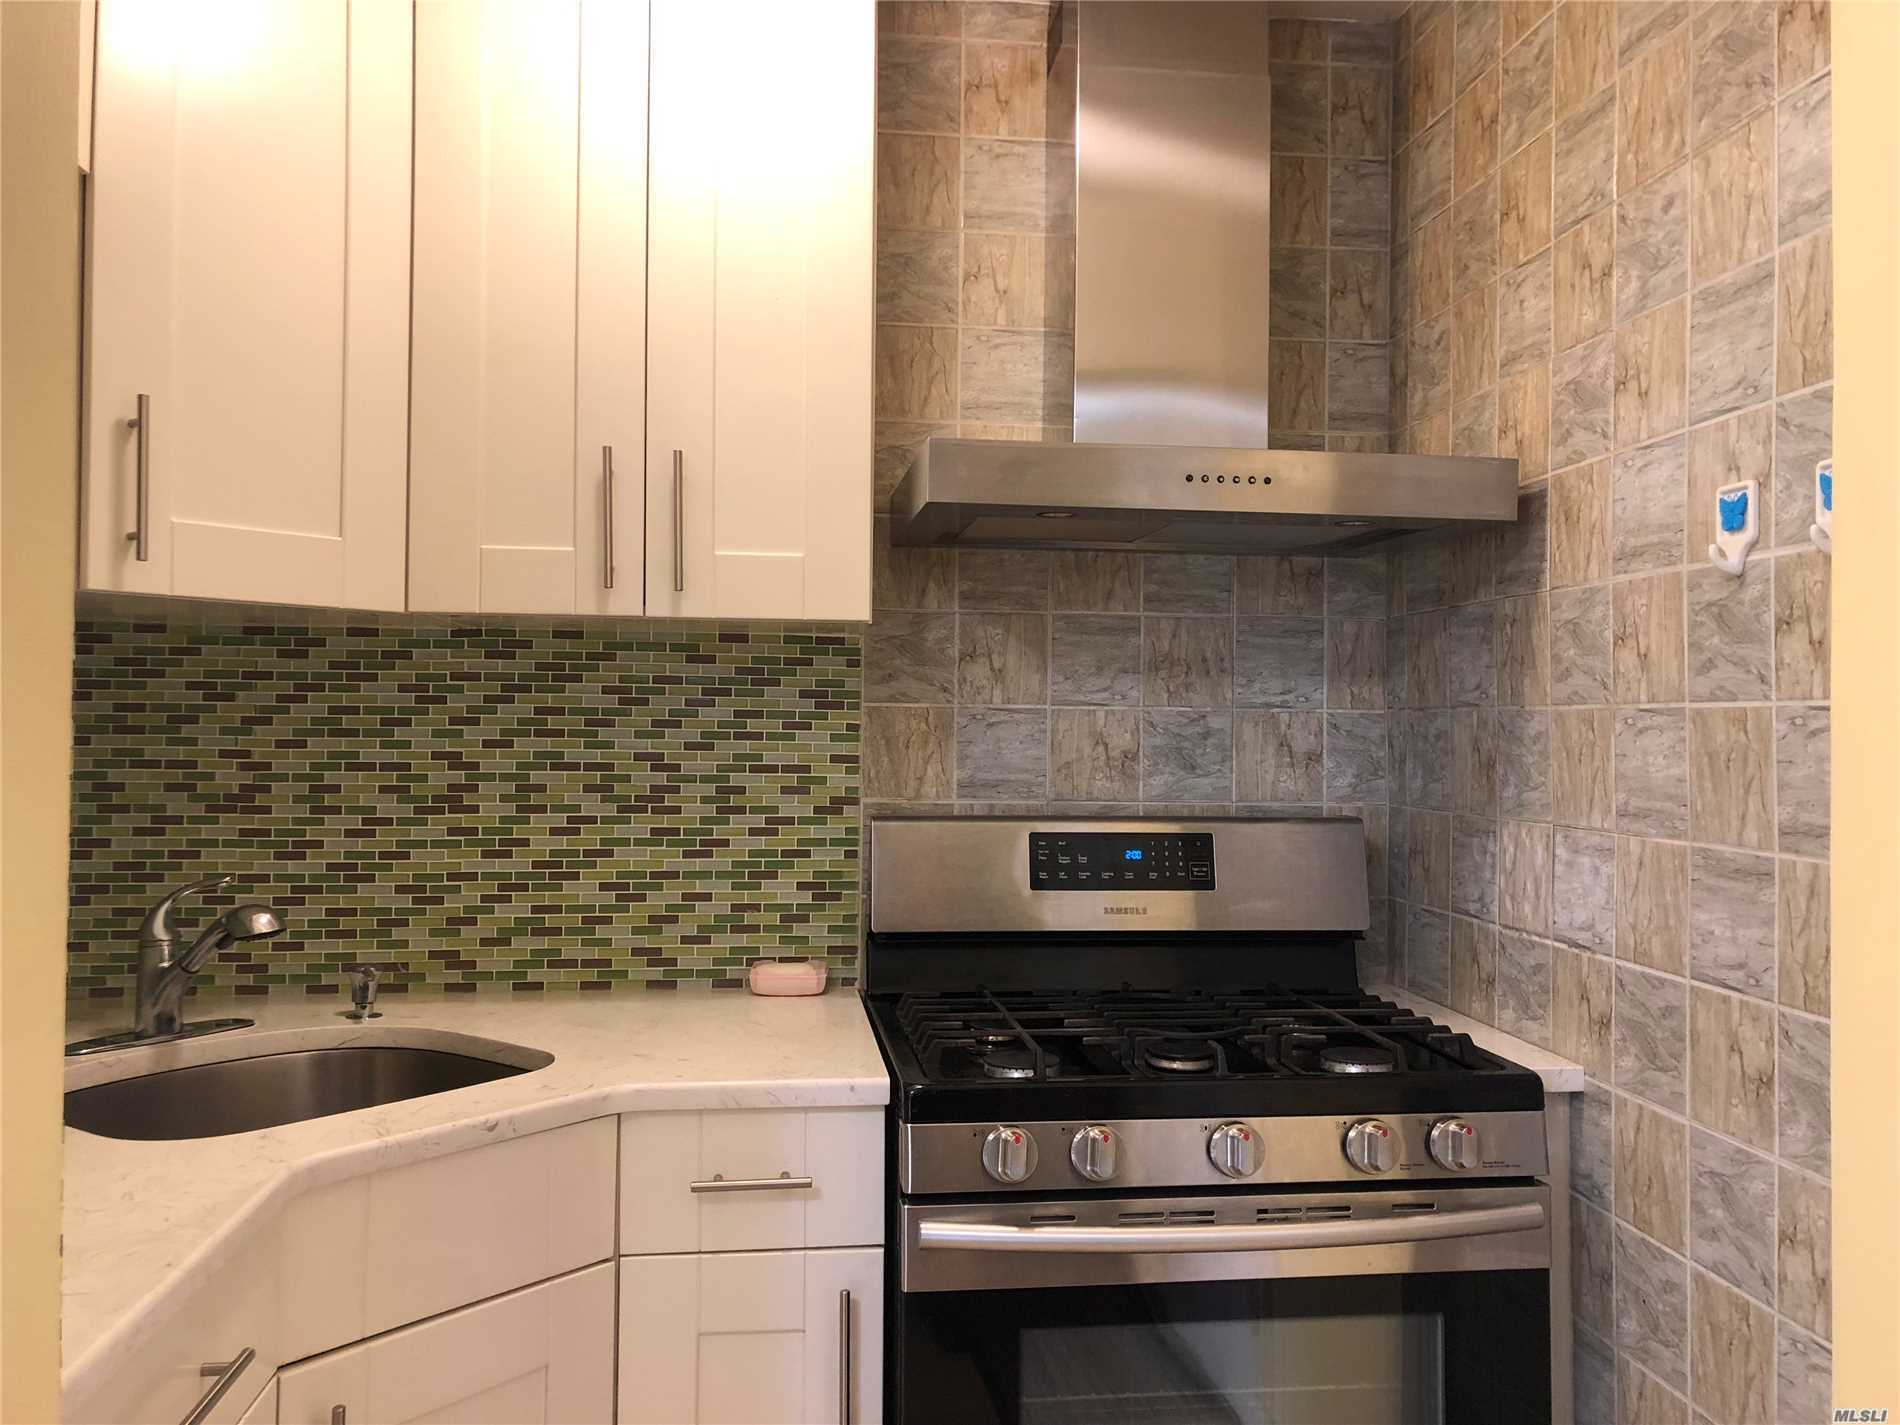 1Br Co-Op At Prime Location Of Flushing, Convenient To All/#7 Subway/Lirr/Supermarkets & Much More. Maintenance Fee Includes All Except Electricity.